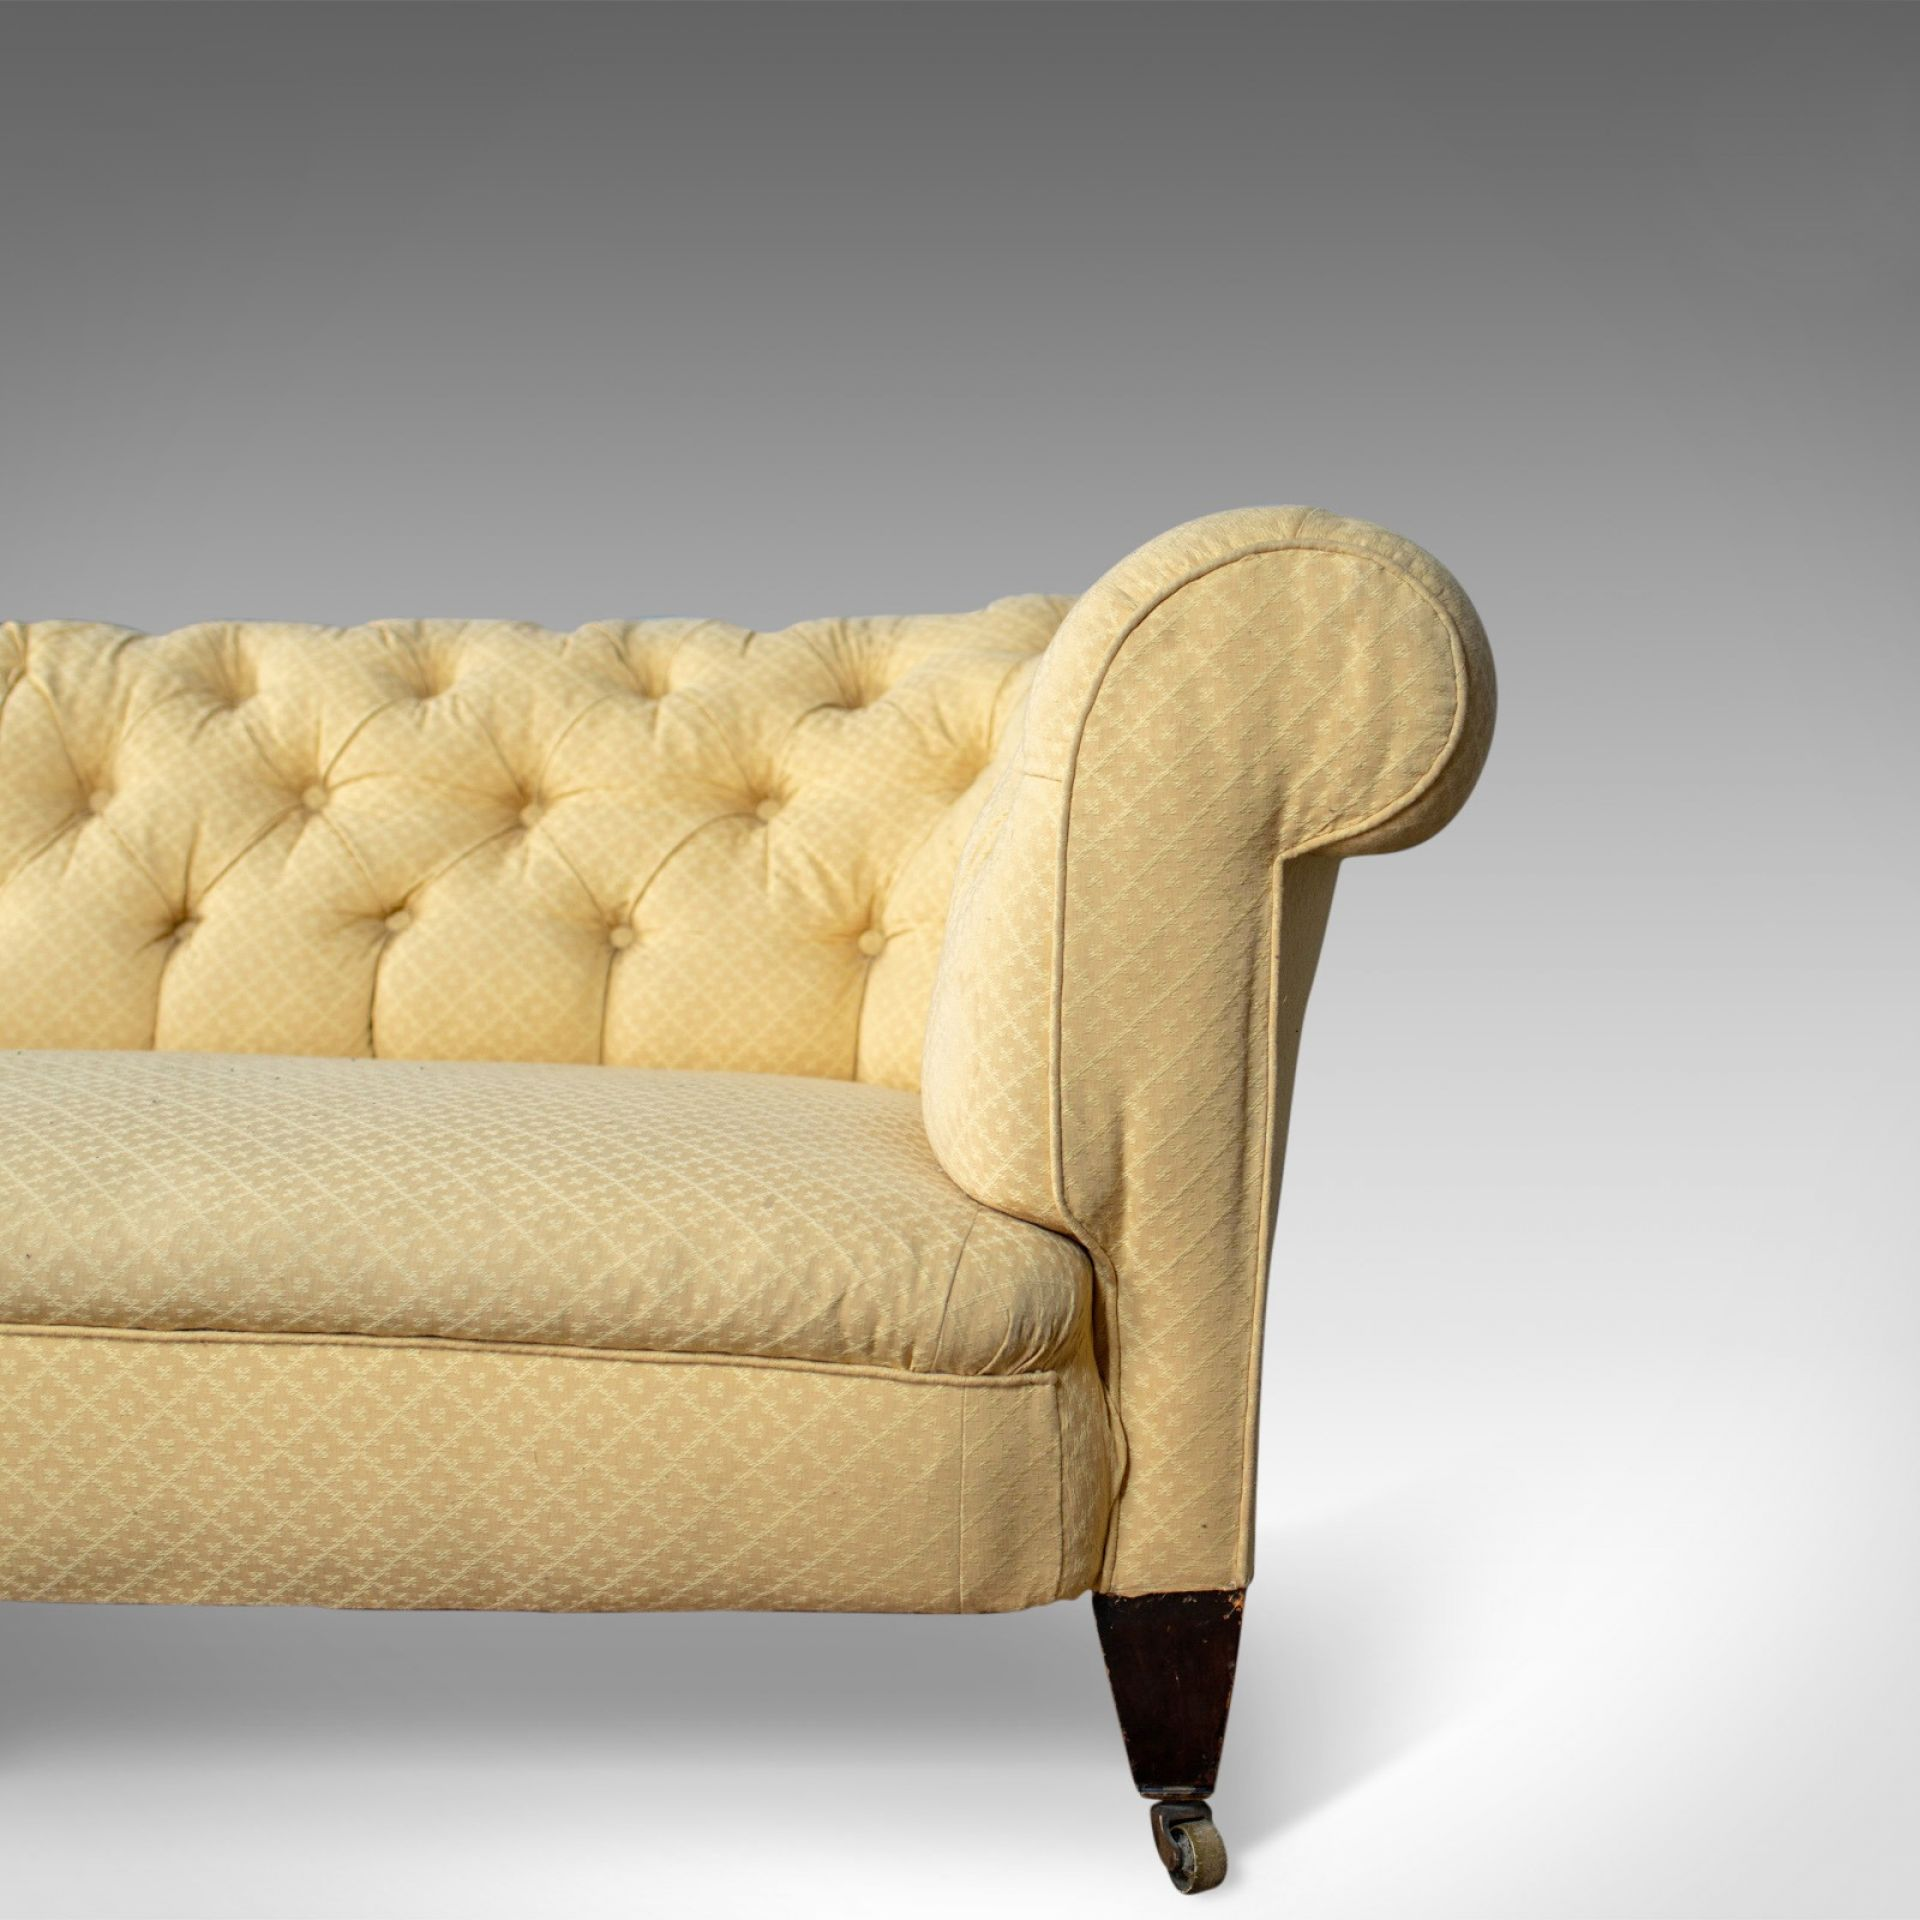 Antique Chesterfield Sofa, English, Victorian, 3 Seater Settee, C19th Circa 1890